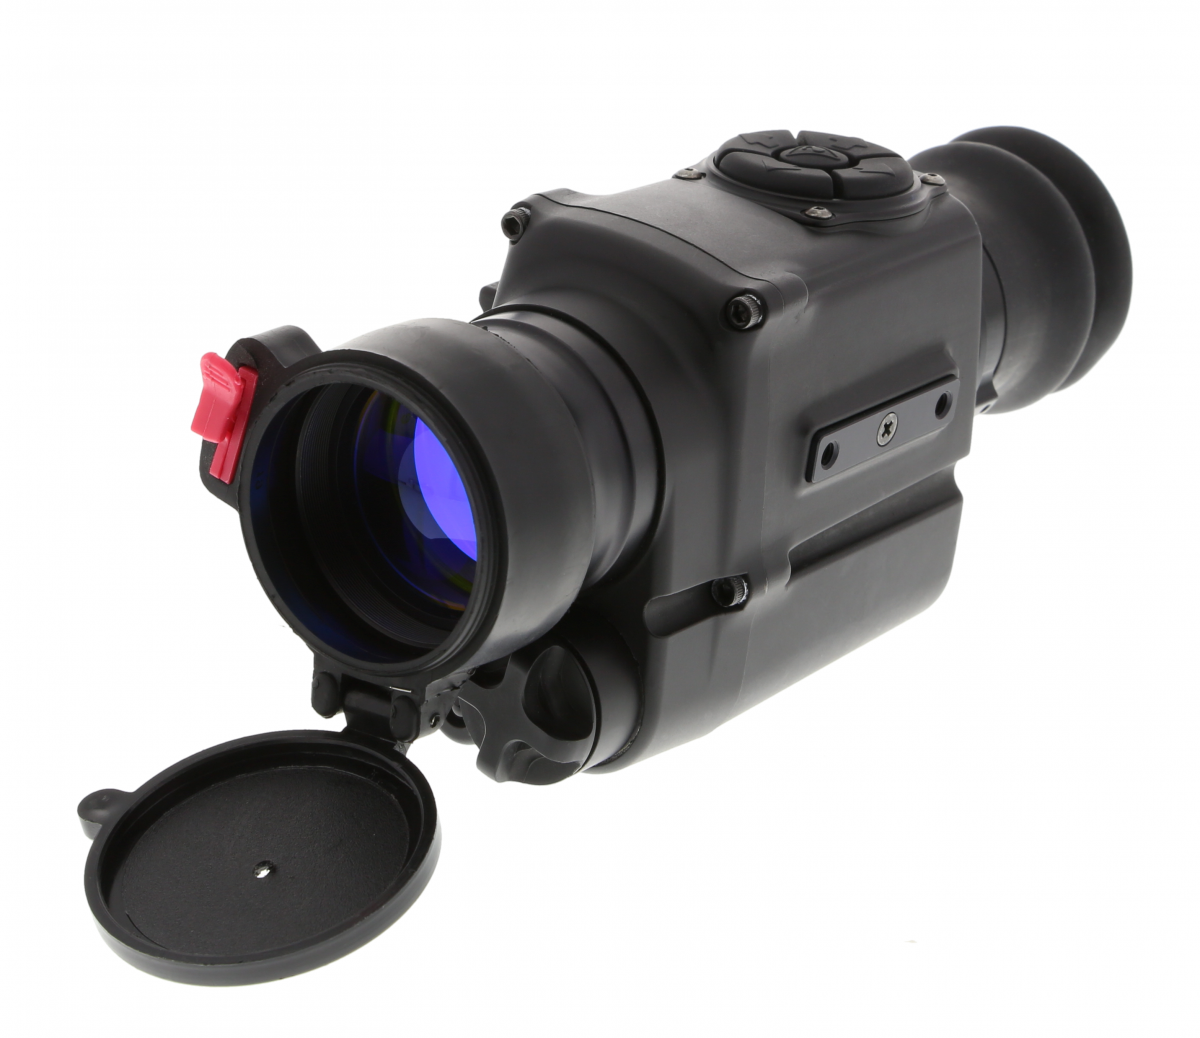 Photonis RPO CNOD HANDHELD / CLIP-ON / WEAPON SIGHT